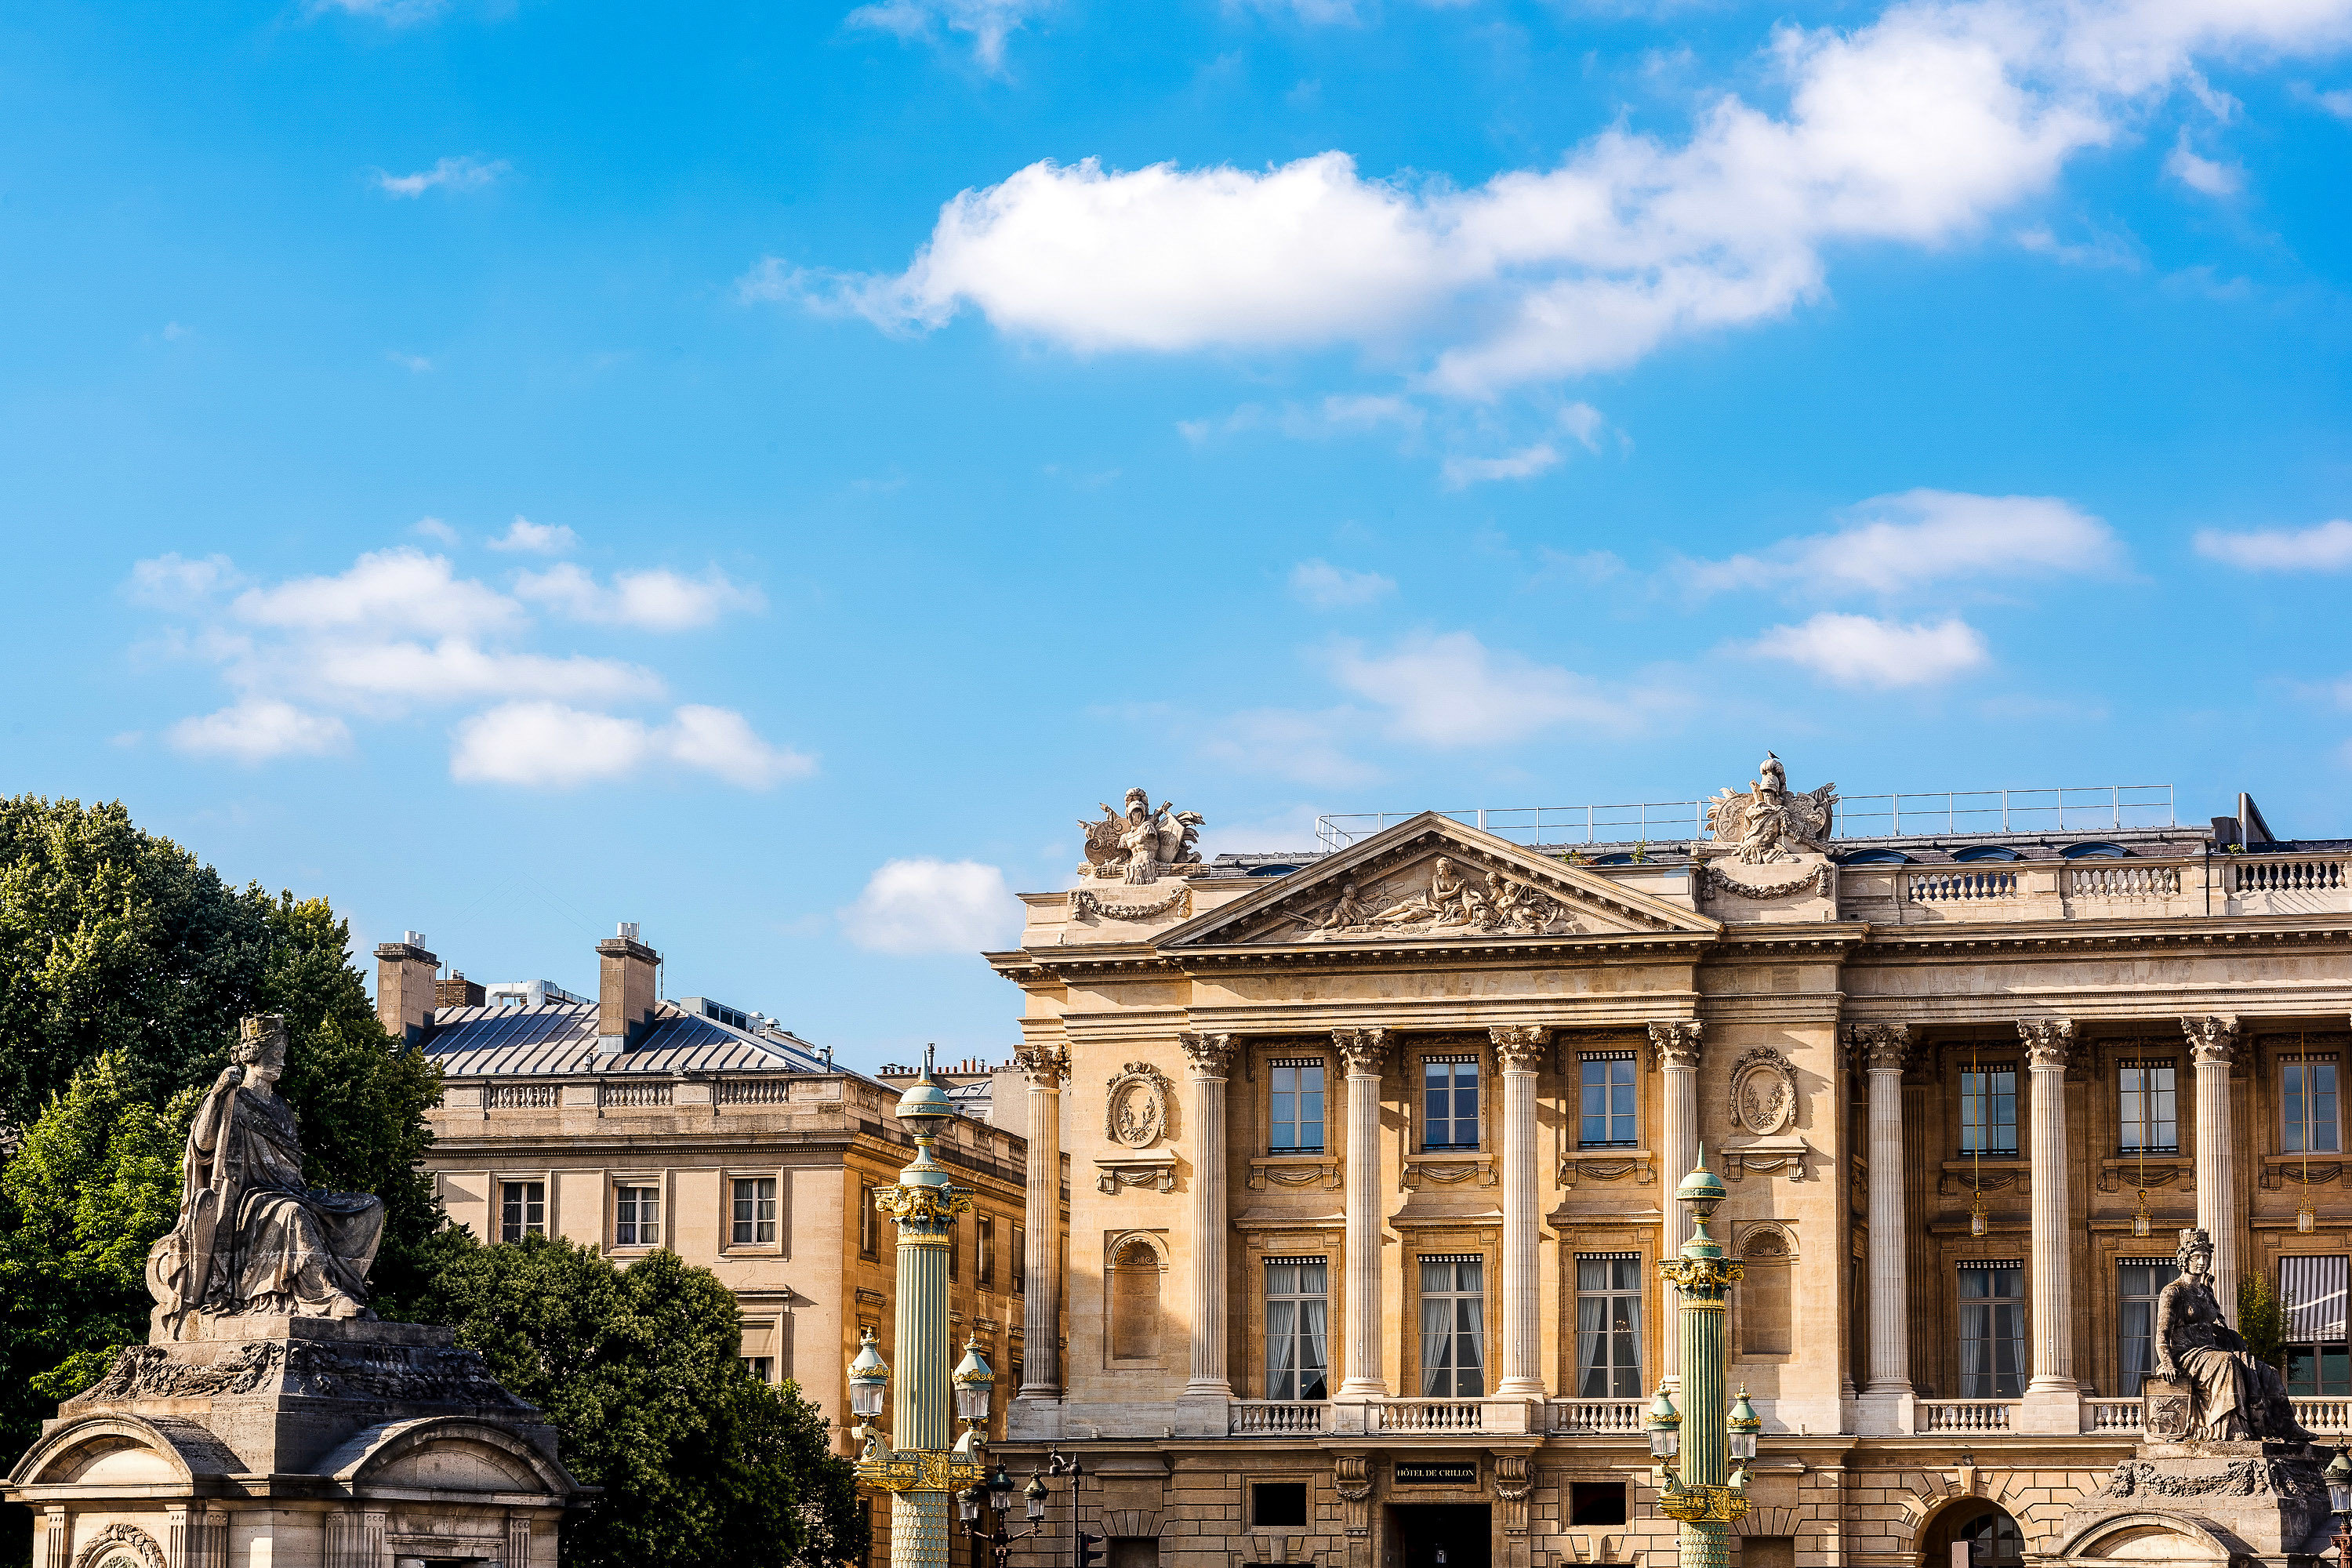 europe Trip Ideas building sky landmark stately home cloud daytime mansion home tree house palace classical architecture residential area château City roof government building plaza stone